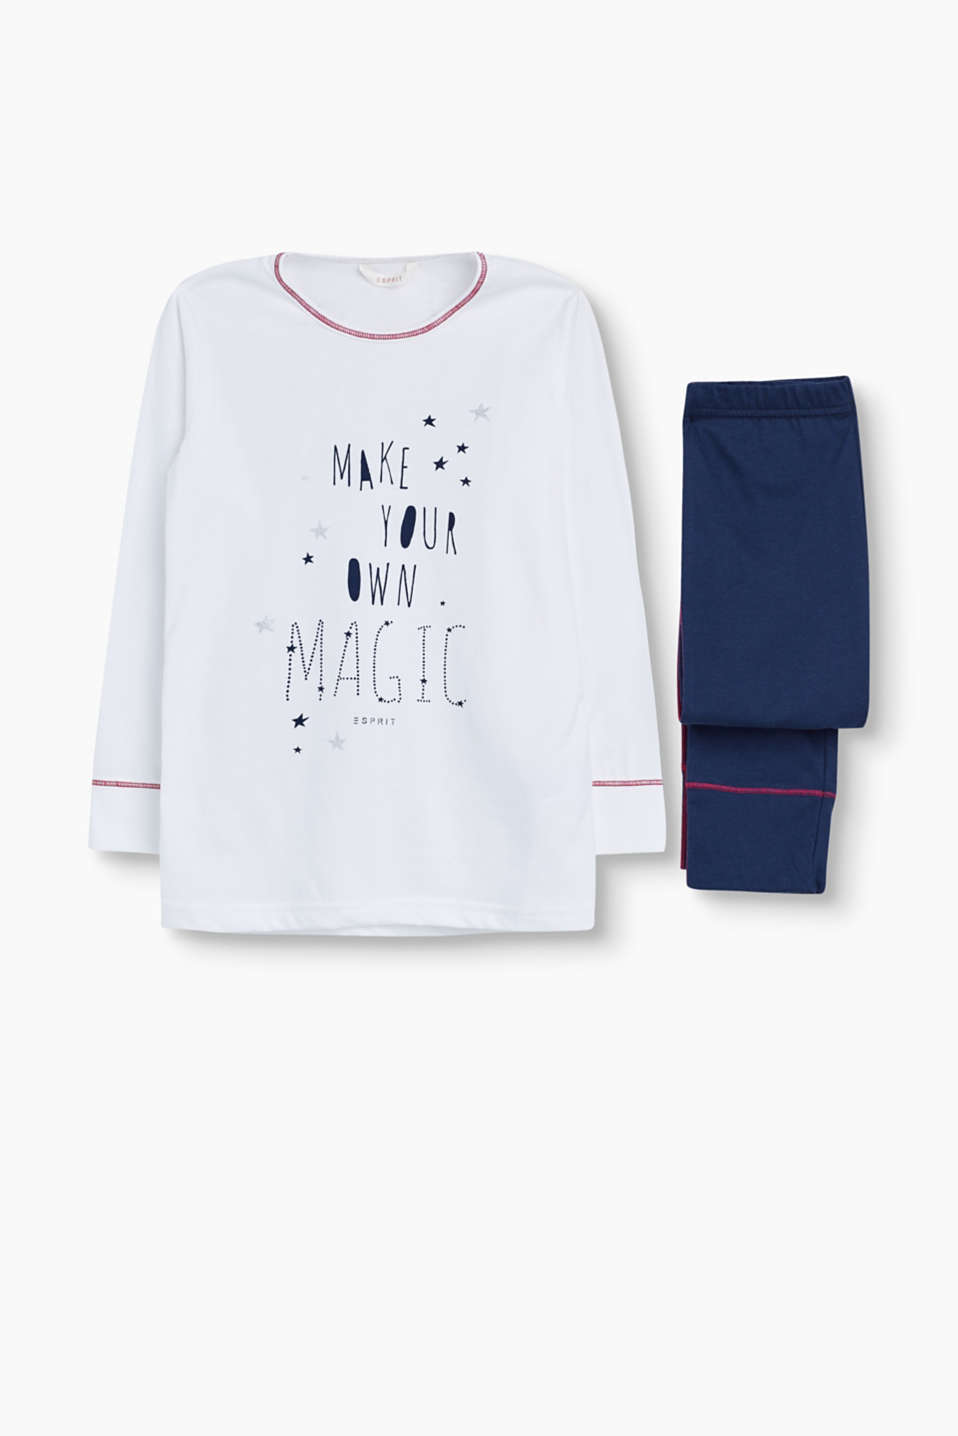 These slogan print pyjamas are wonderfully soft and look very fashionable.